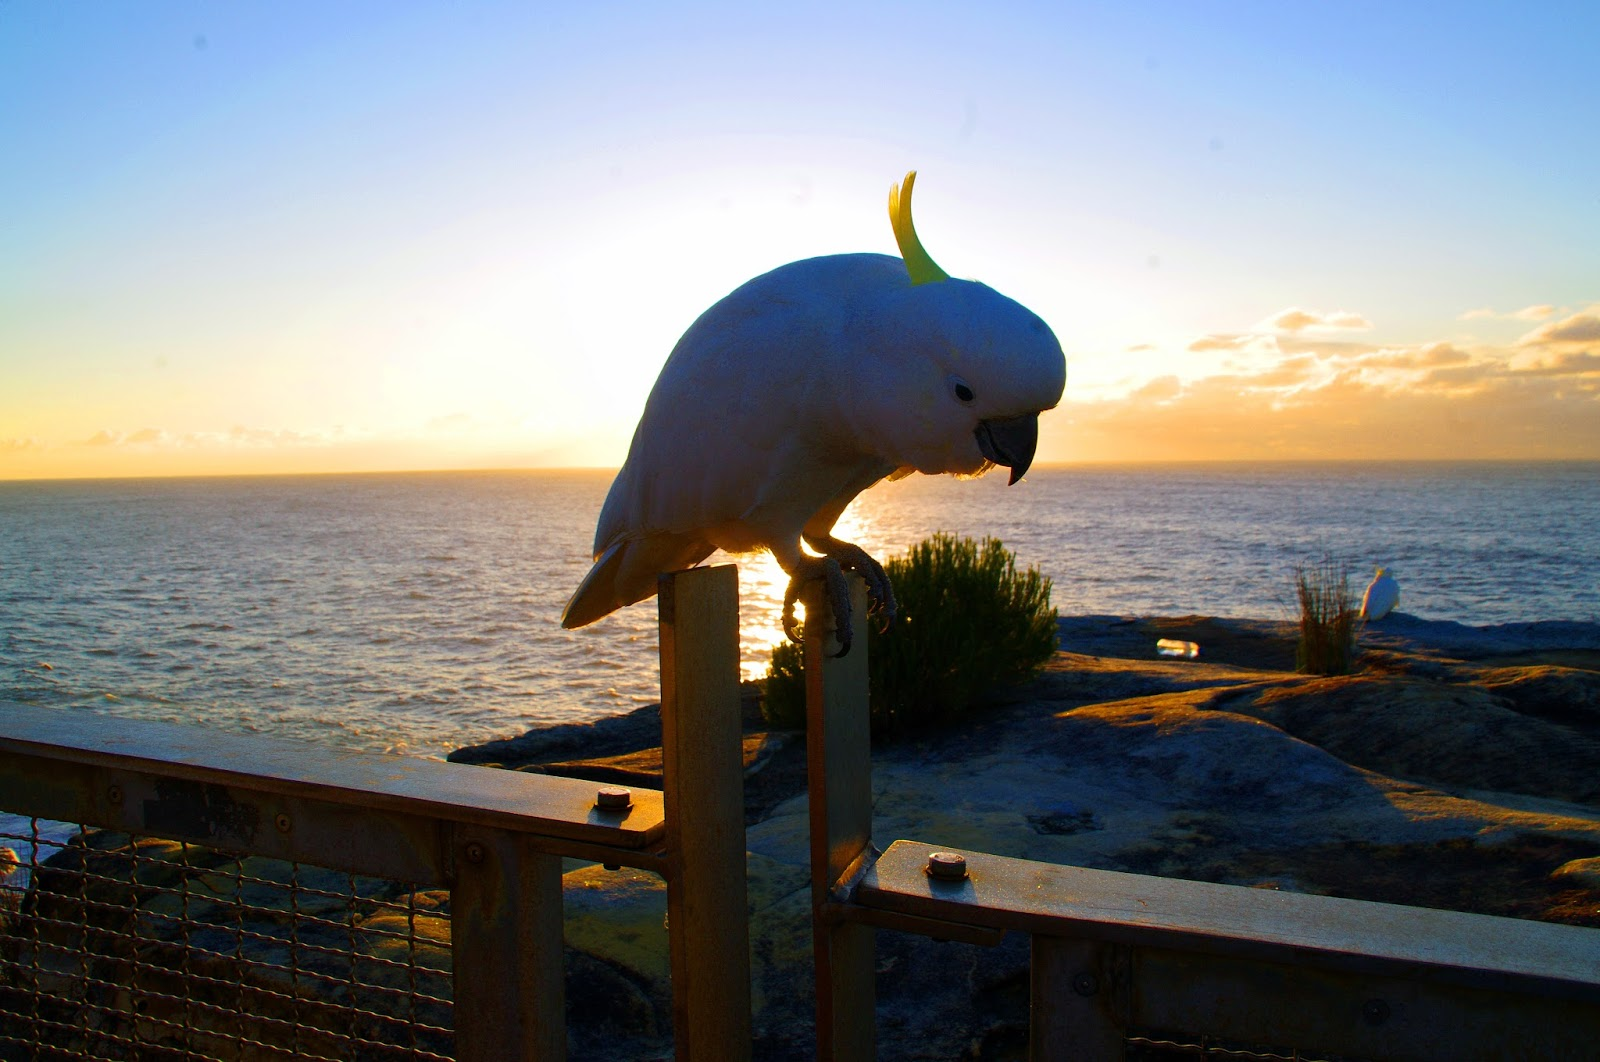 cockatoo at sunrise